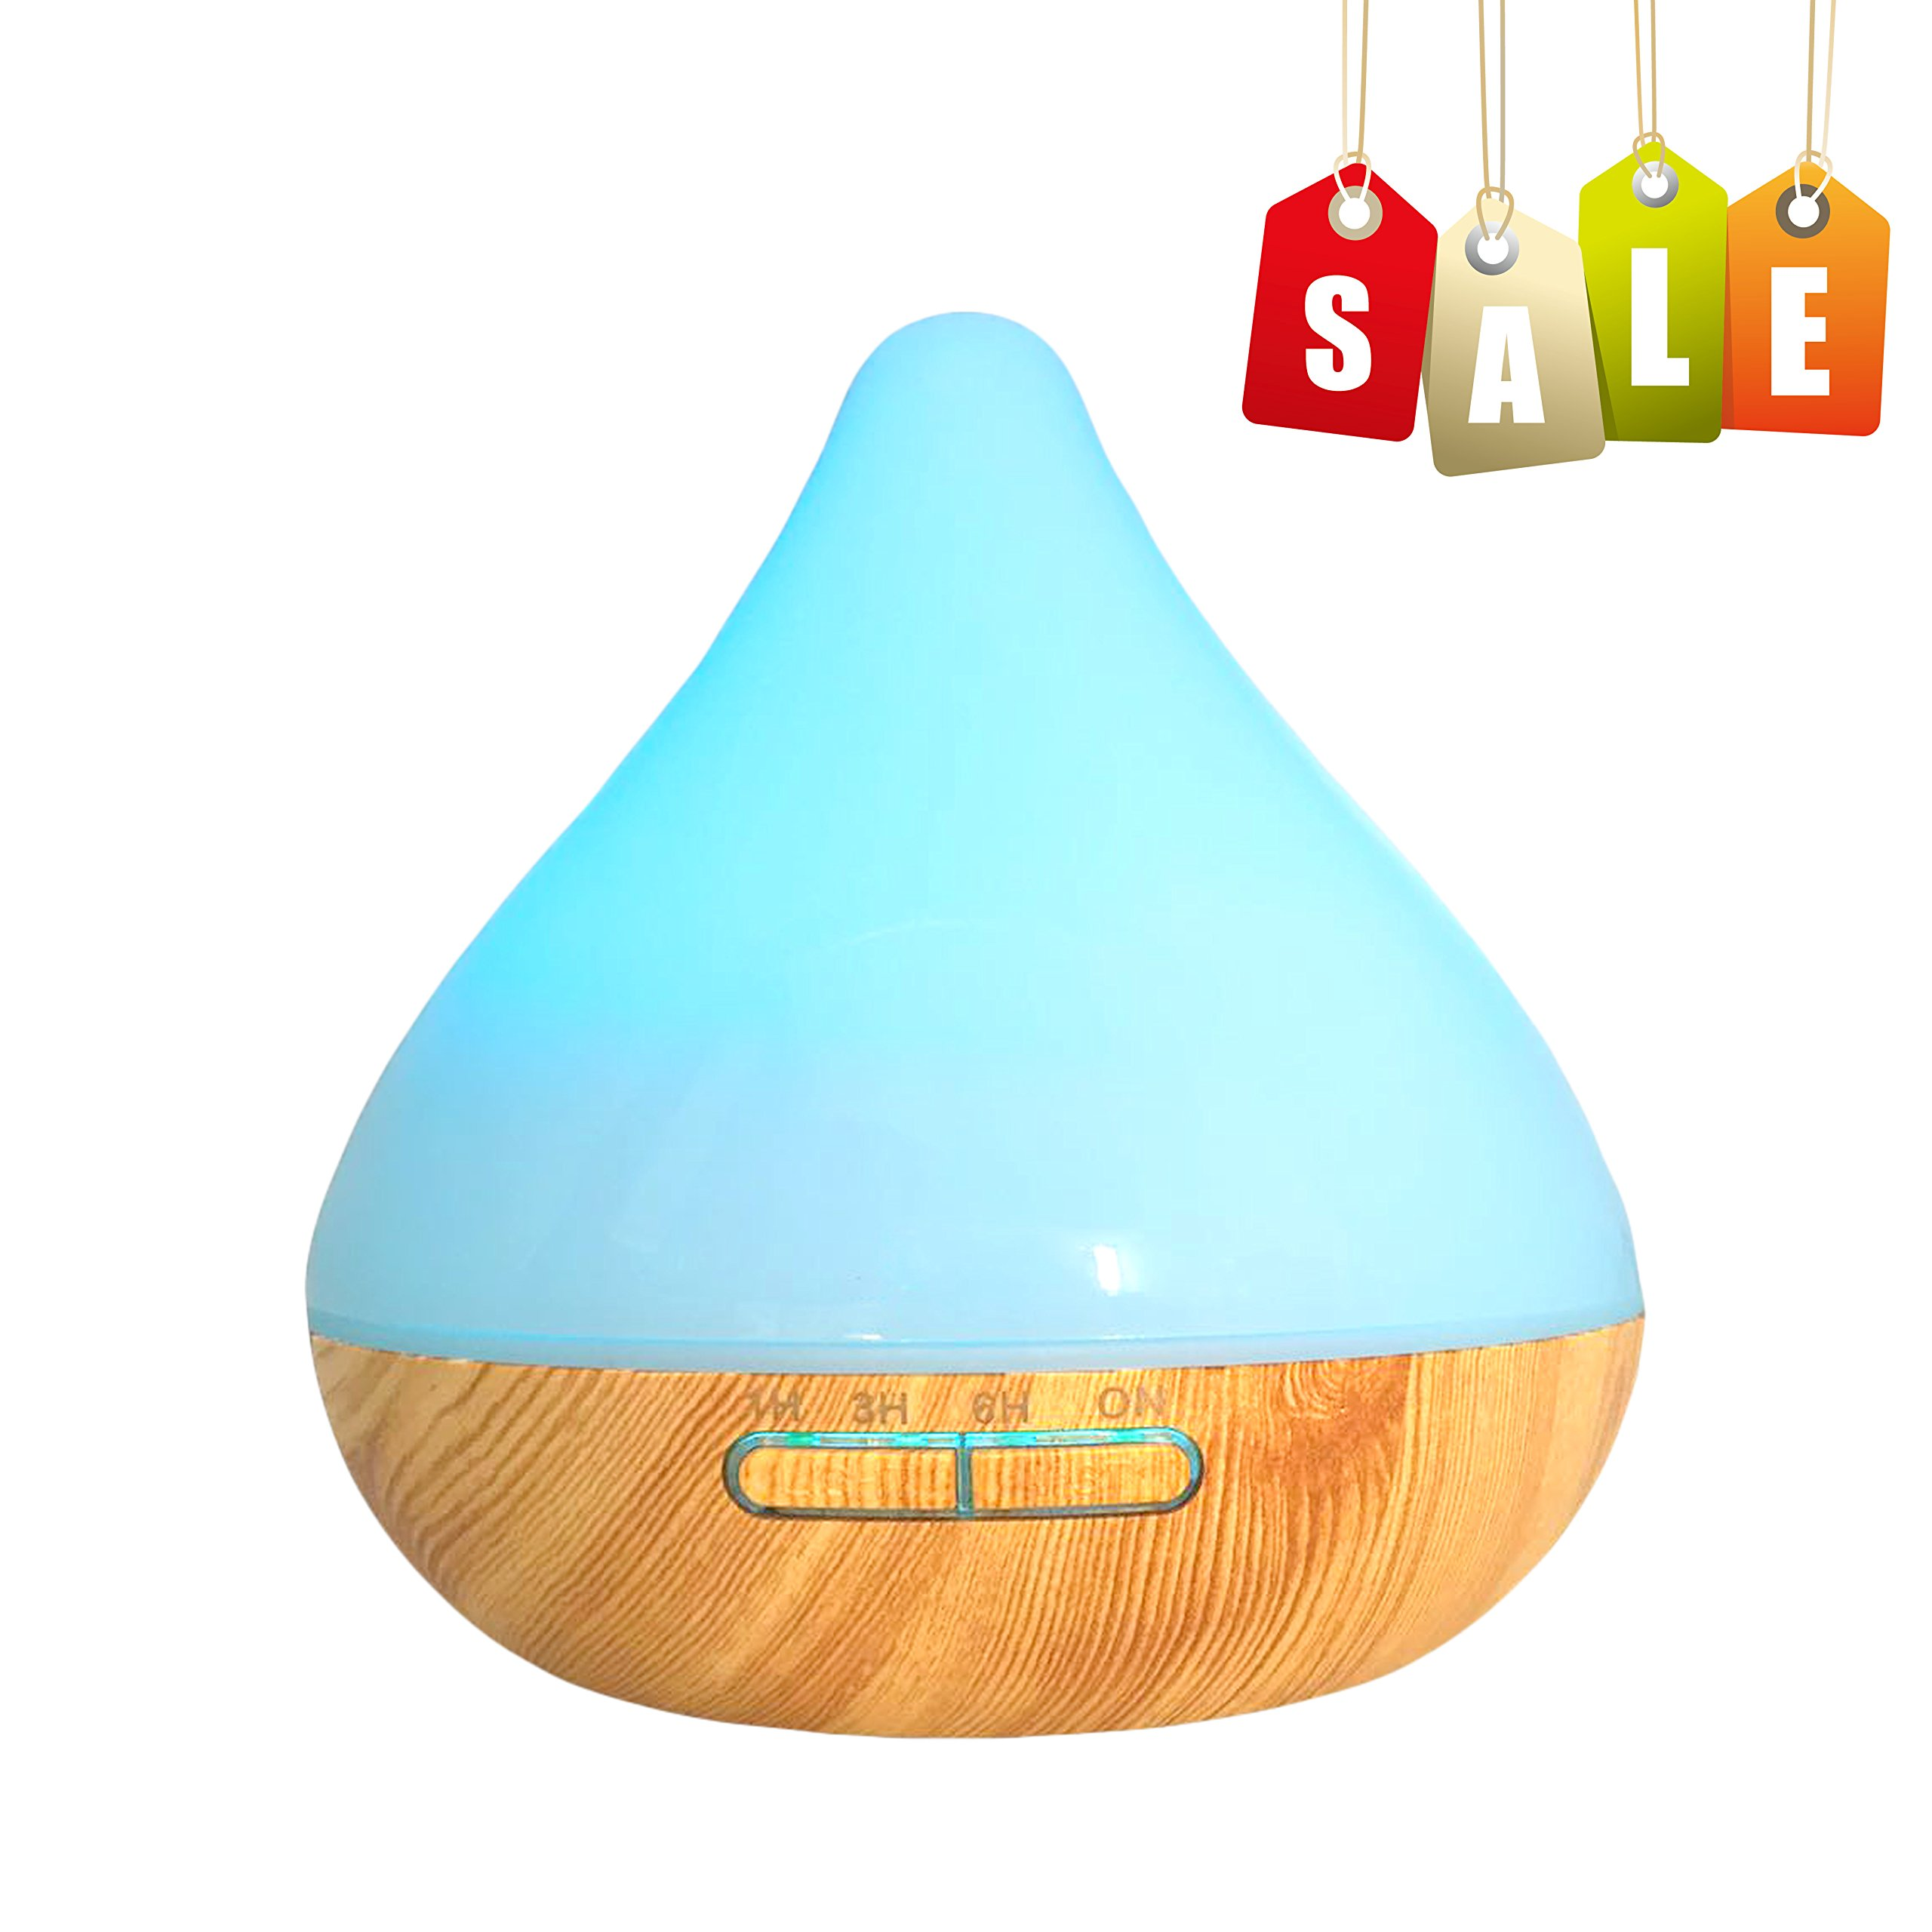 Wisdorigin Essential Oil Diffuser,300ml Aroma Essential Oil Cool Mist Humidifier with Waterless Auto Shut-Off and 7 Color LED Lights Changing for Home Office Bedroom Yoga Spa